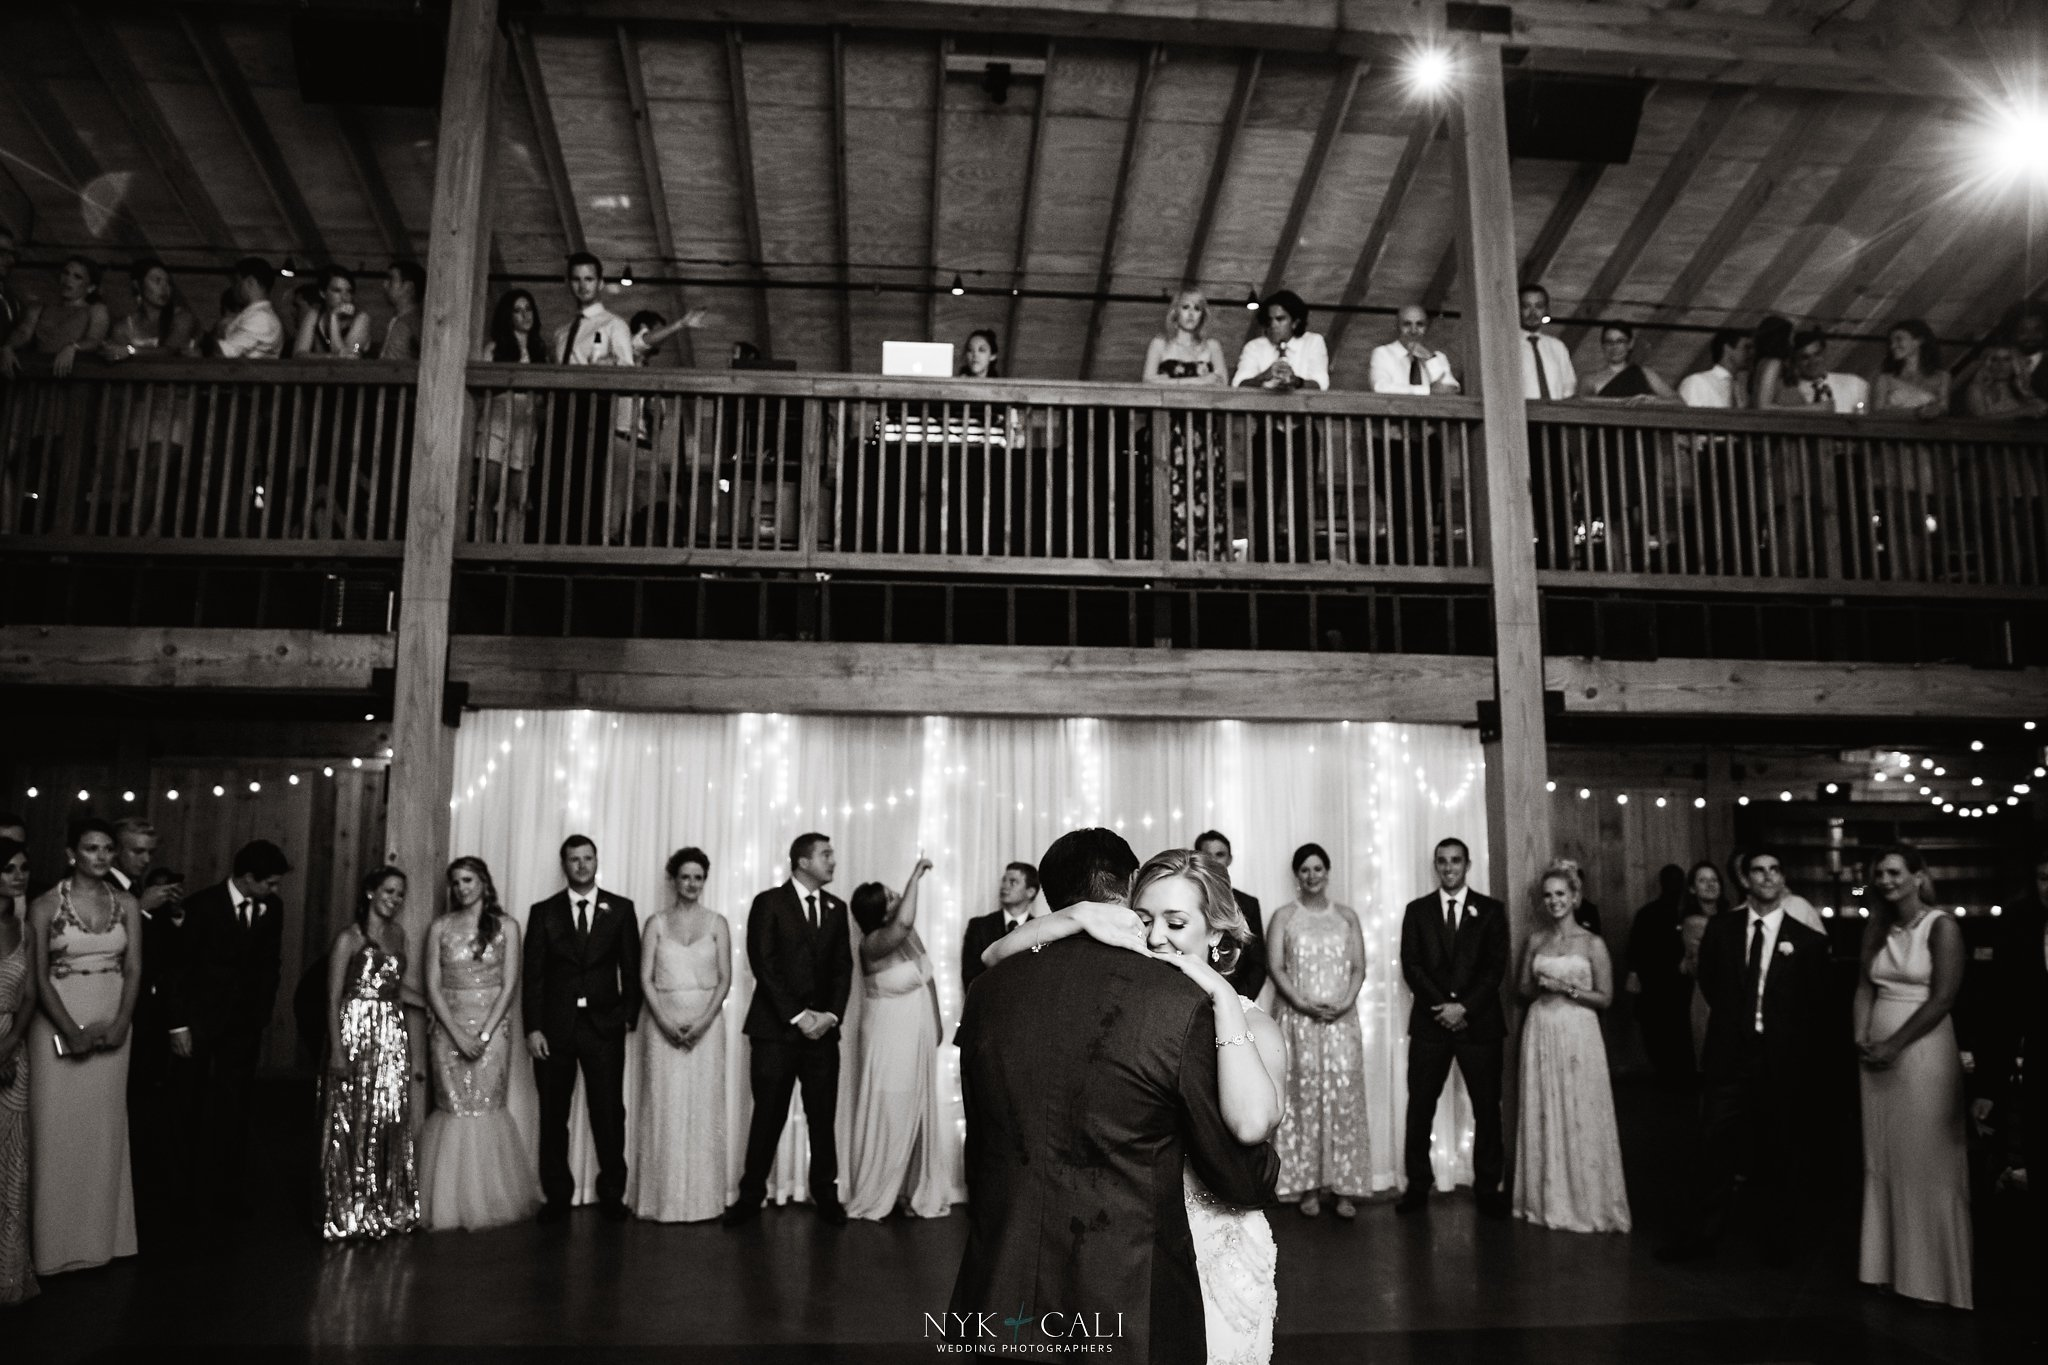 nyk-and-cali-wedding-photo-snyder-entertainment